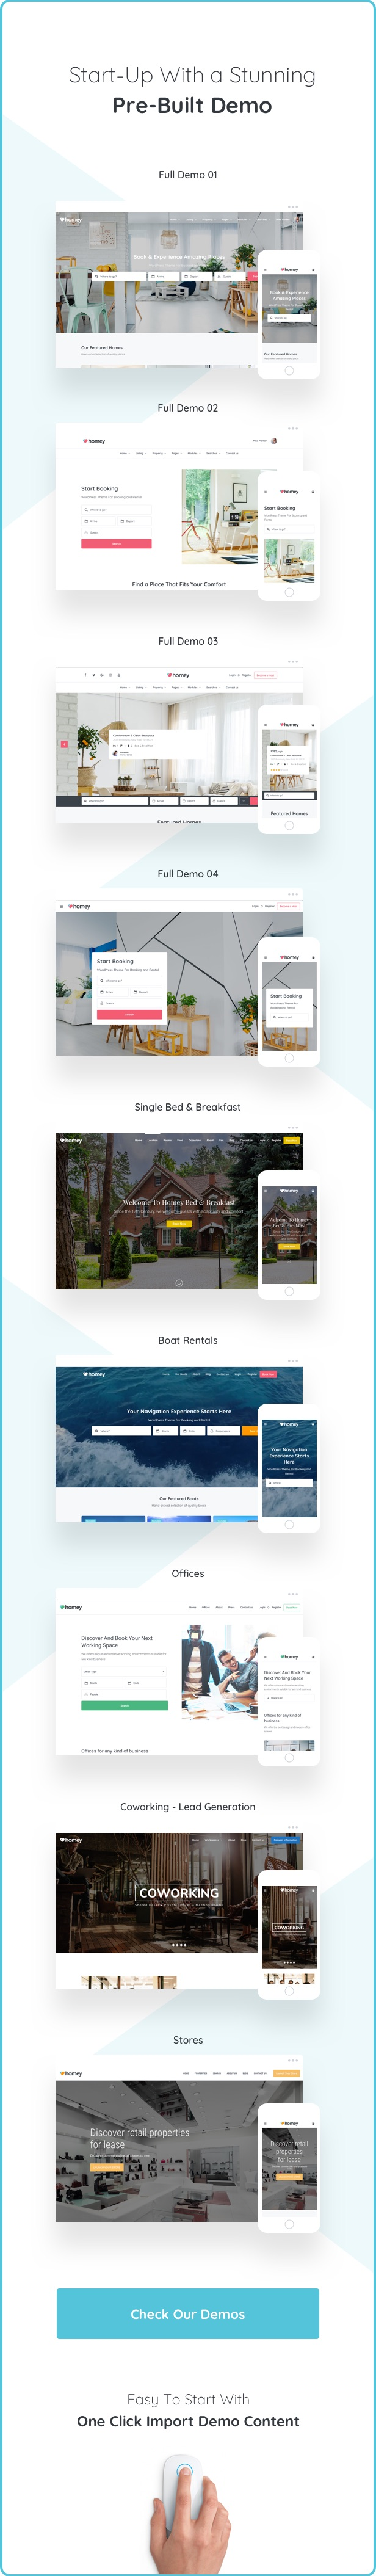 Homey - Booking and Rentals WordPress Theme - 8